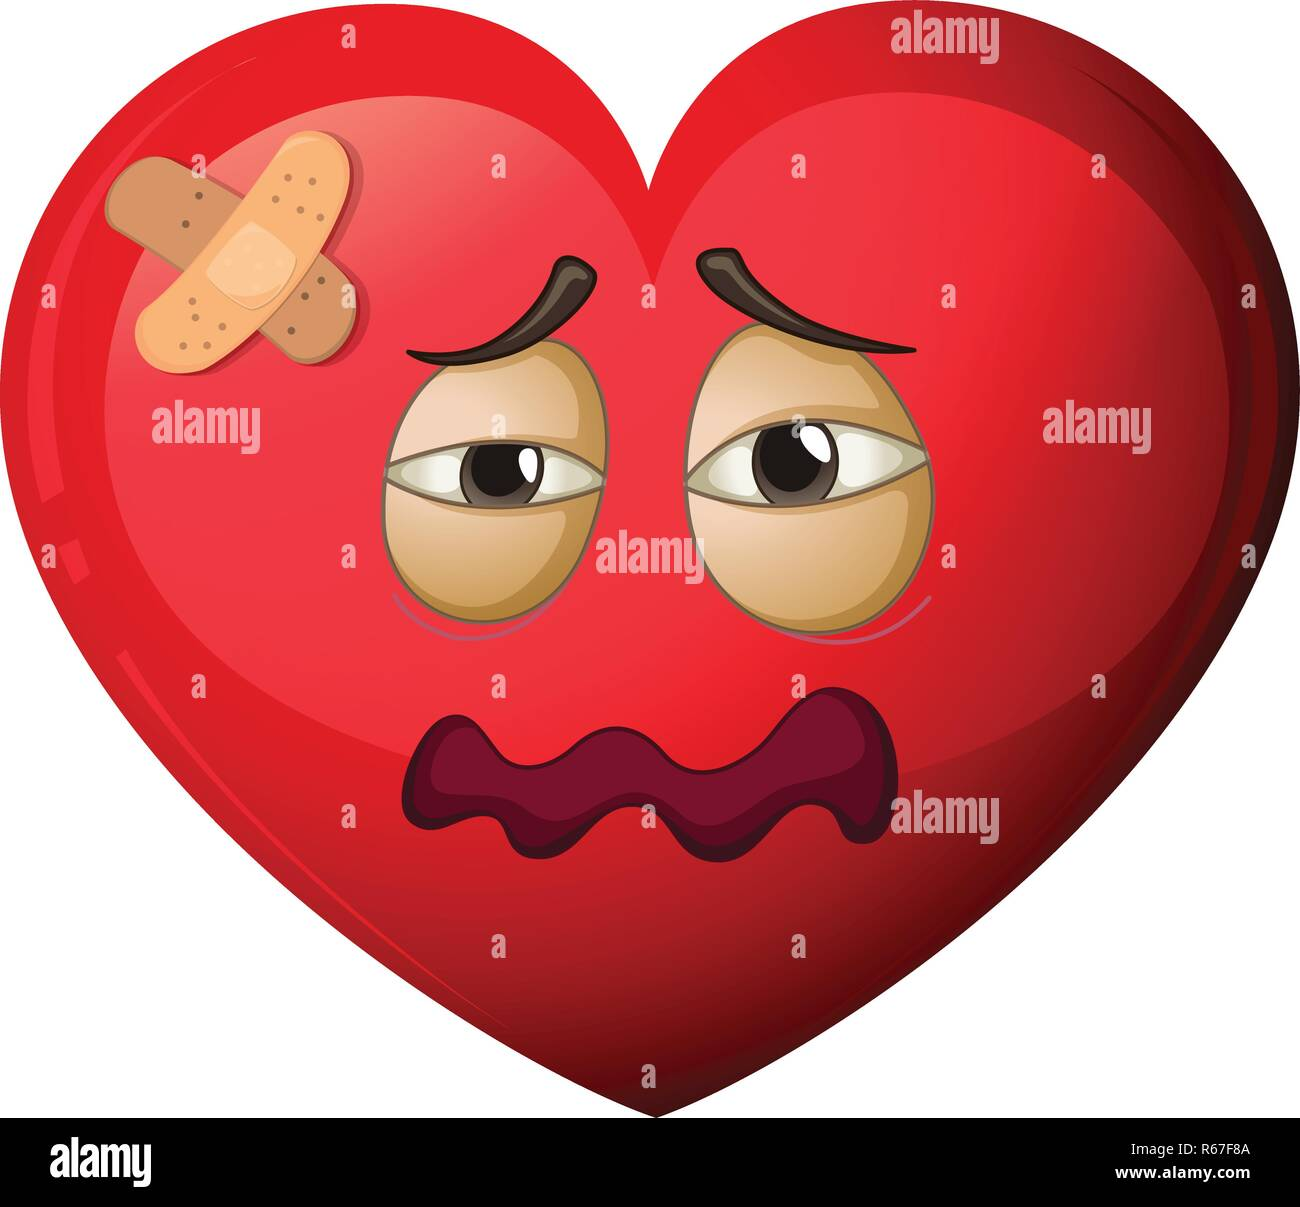 A heart character in pain illustration - Stock Vector